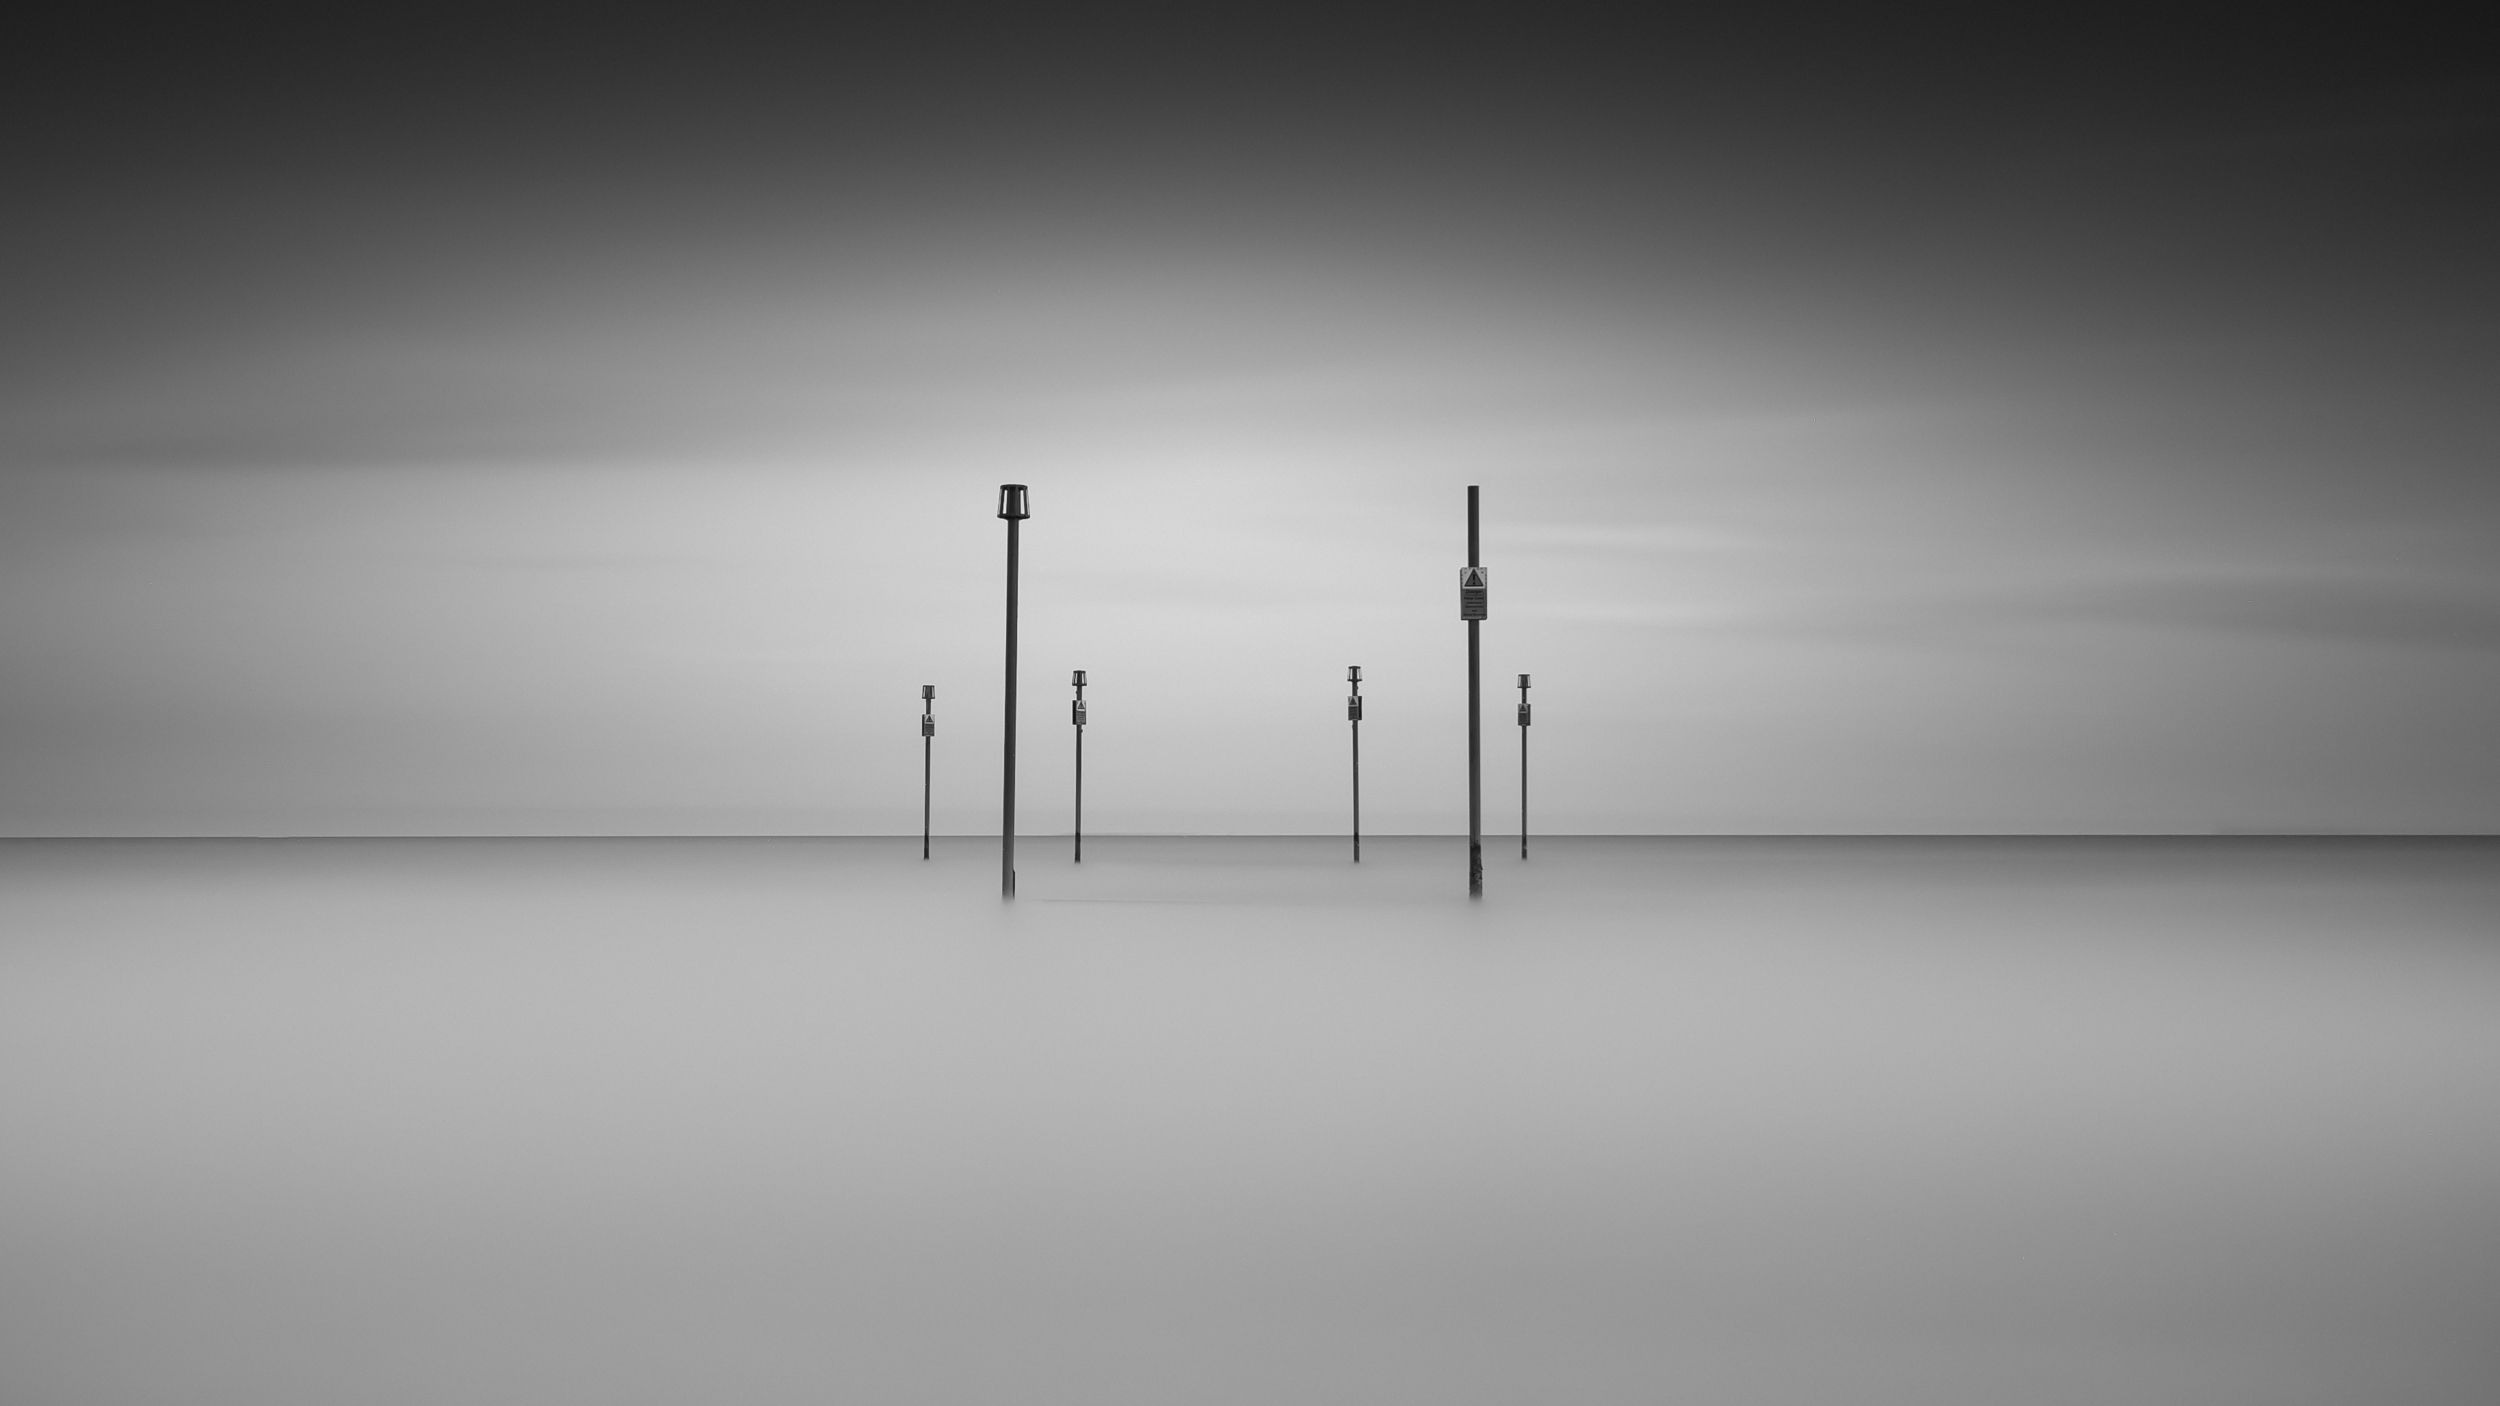 Seascape photography, long exposure